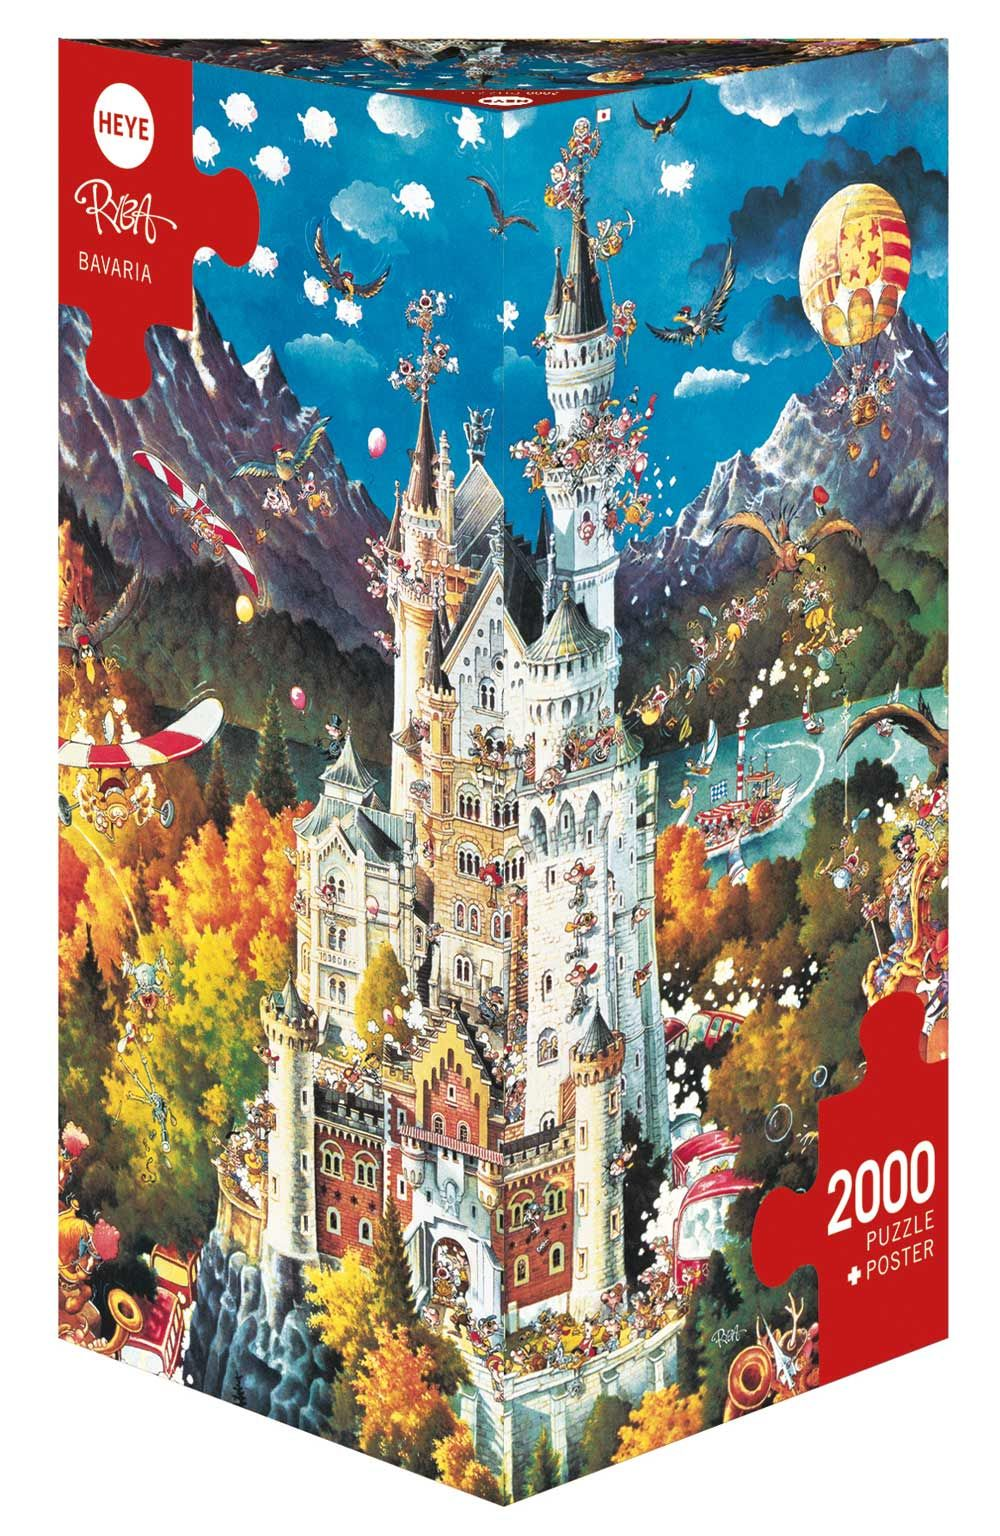 Bavaria 2000 Pieces Heye Puzzle Warehouse Bavaria Puzzle Art Puzzle